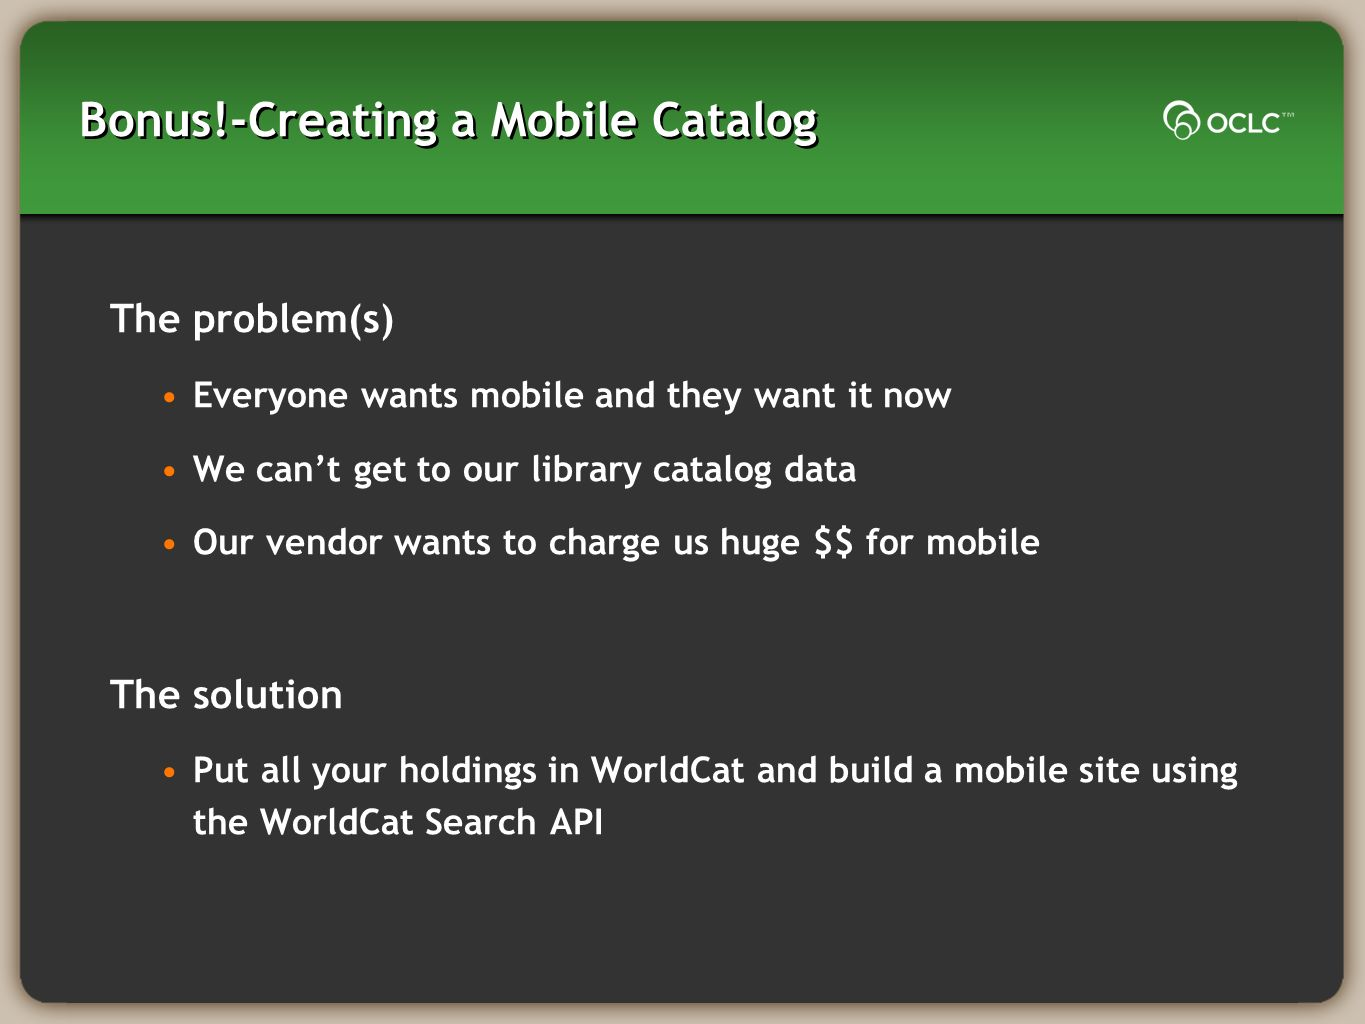 Bonus!-Creating a Mobile Catalog The problem(s) Everyone wants mobile and they want it now We cant get to our library catalog data Our vendor wants to charge us huge $$ for mobile The solution Put all your holdings in WorldCat and build a mobile site using the WorldCat Search API